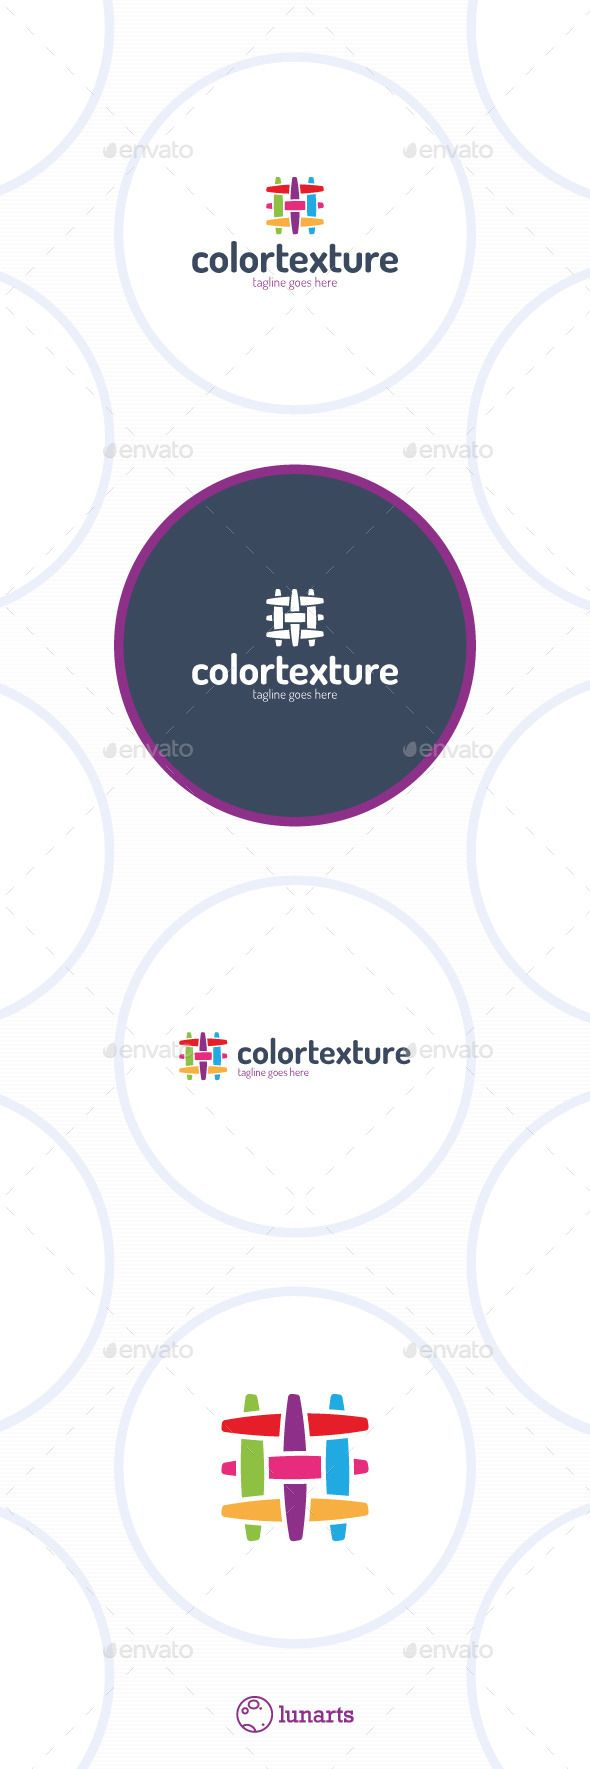 Colorful Texture Logo - Fabric Canvas Linien  #object #sewing #shop • Available here → http://graphicriver.net/item/colorful-texture-logo-fabric-canvas-linien/11926363?s_rank=278&ref=pxcr